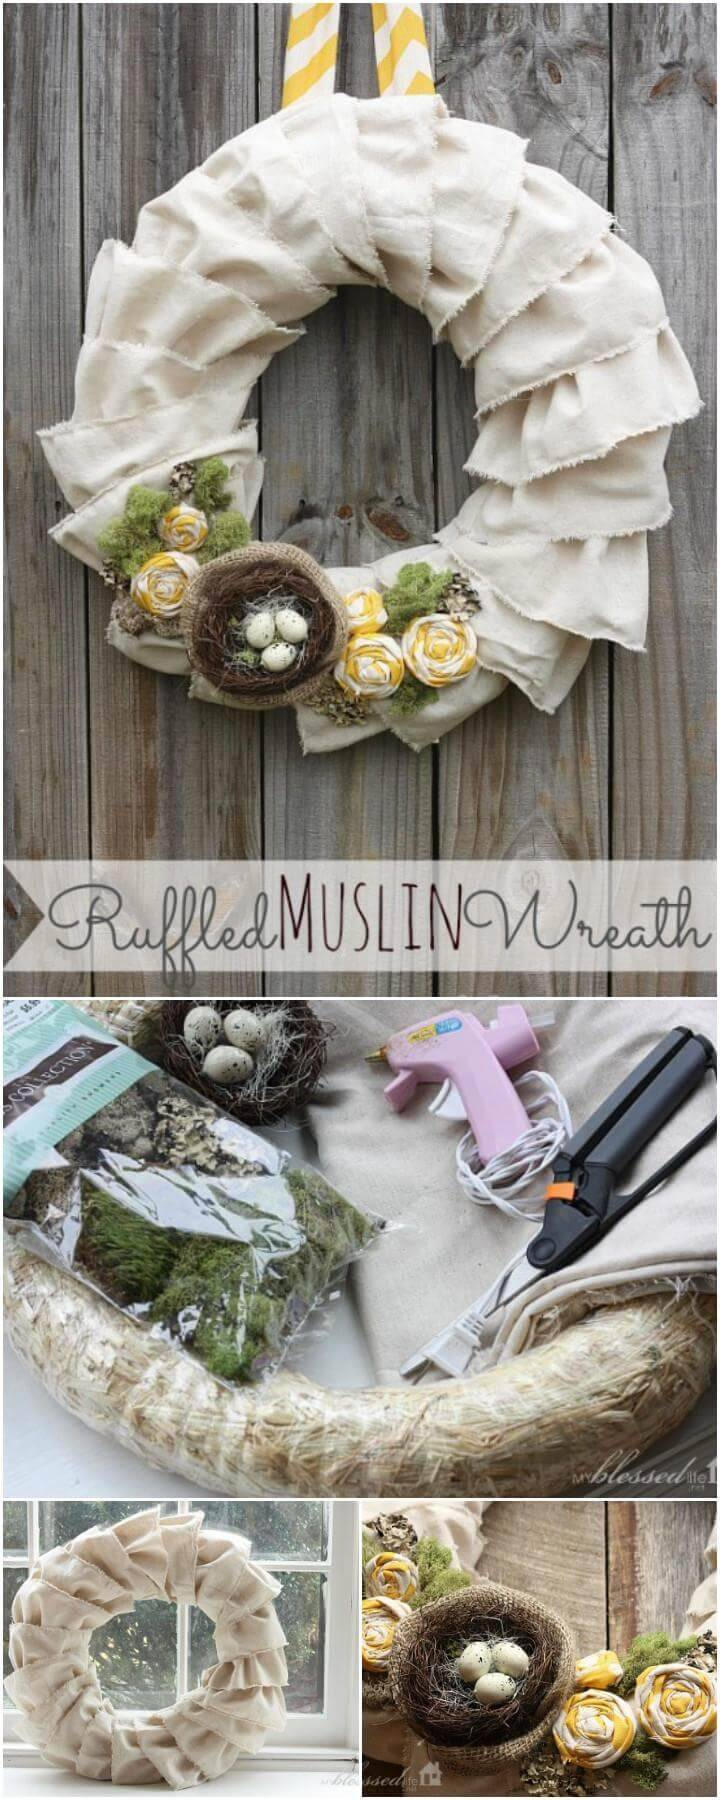 DIY Beautiful Ruffled Muslin Wreath